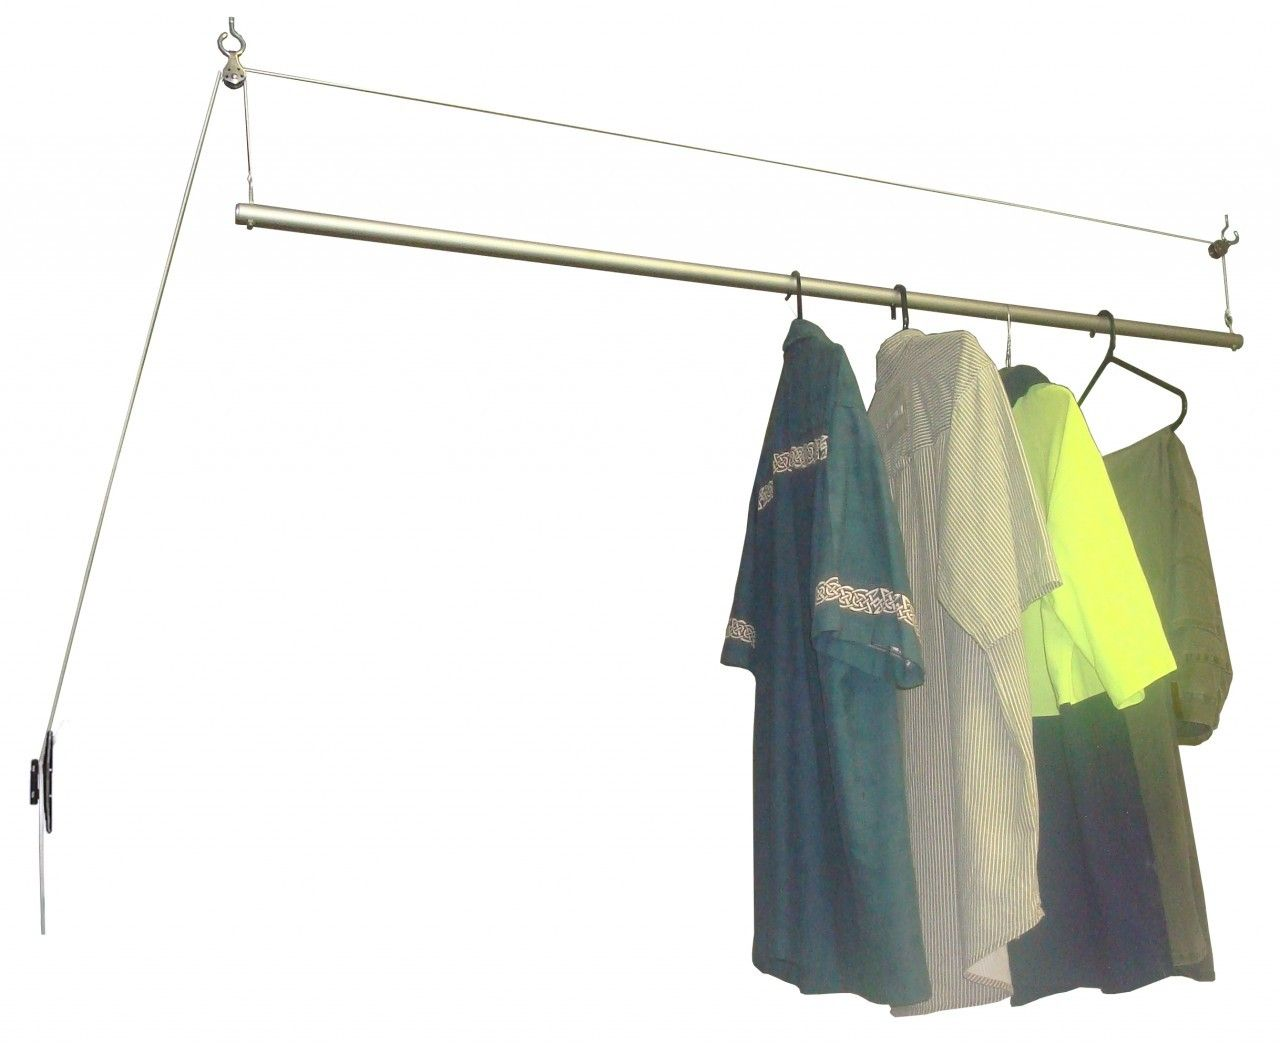 Versaline Pulley Rail Airer Uses A Very Simple Pulley